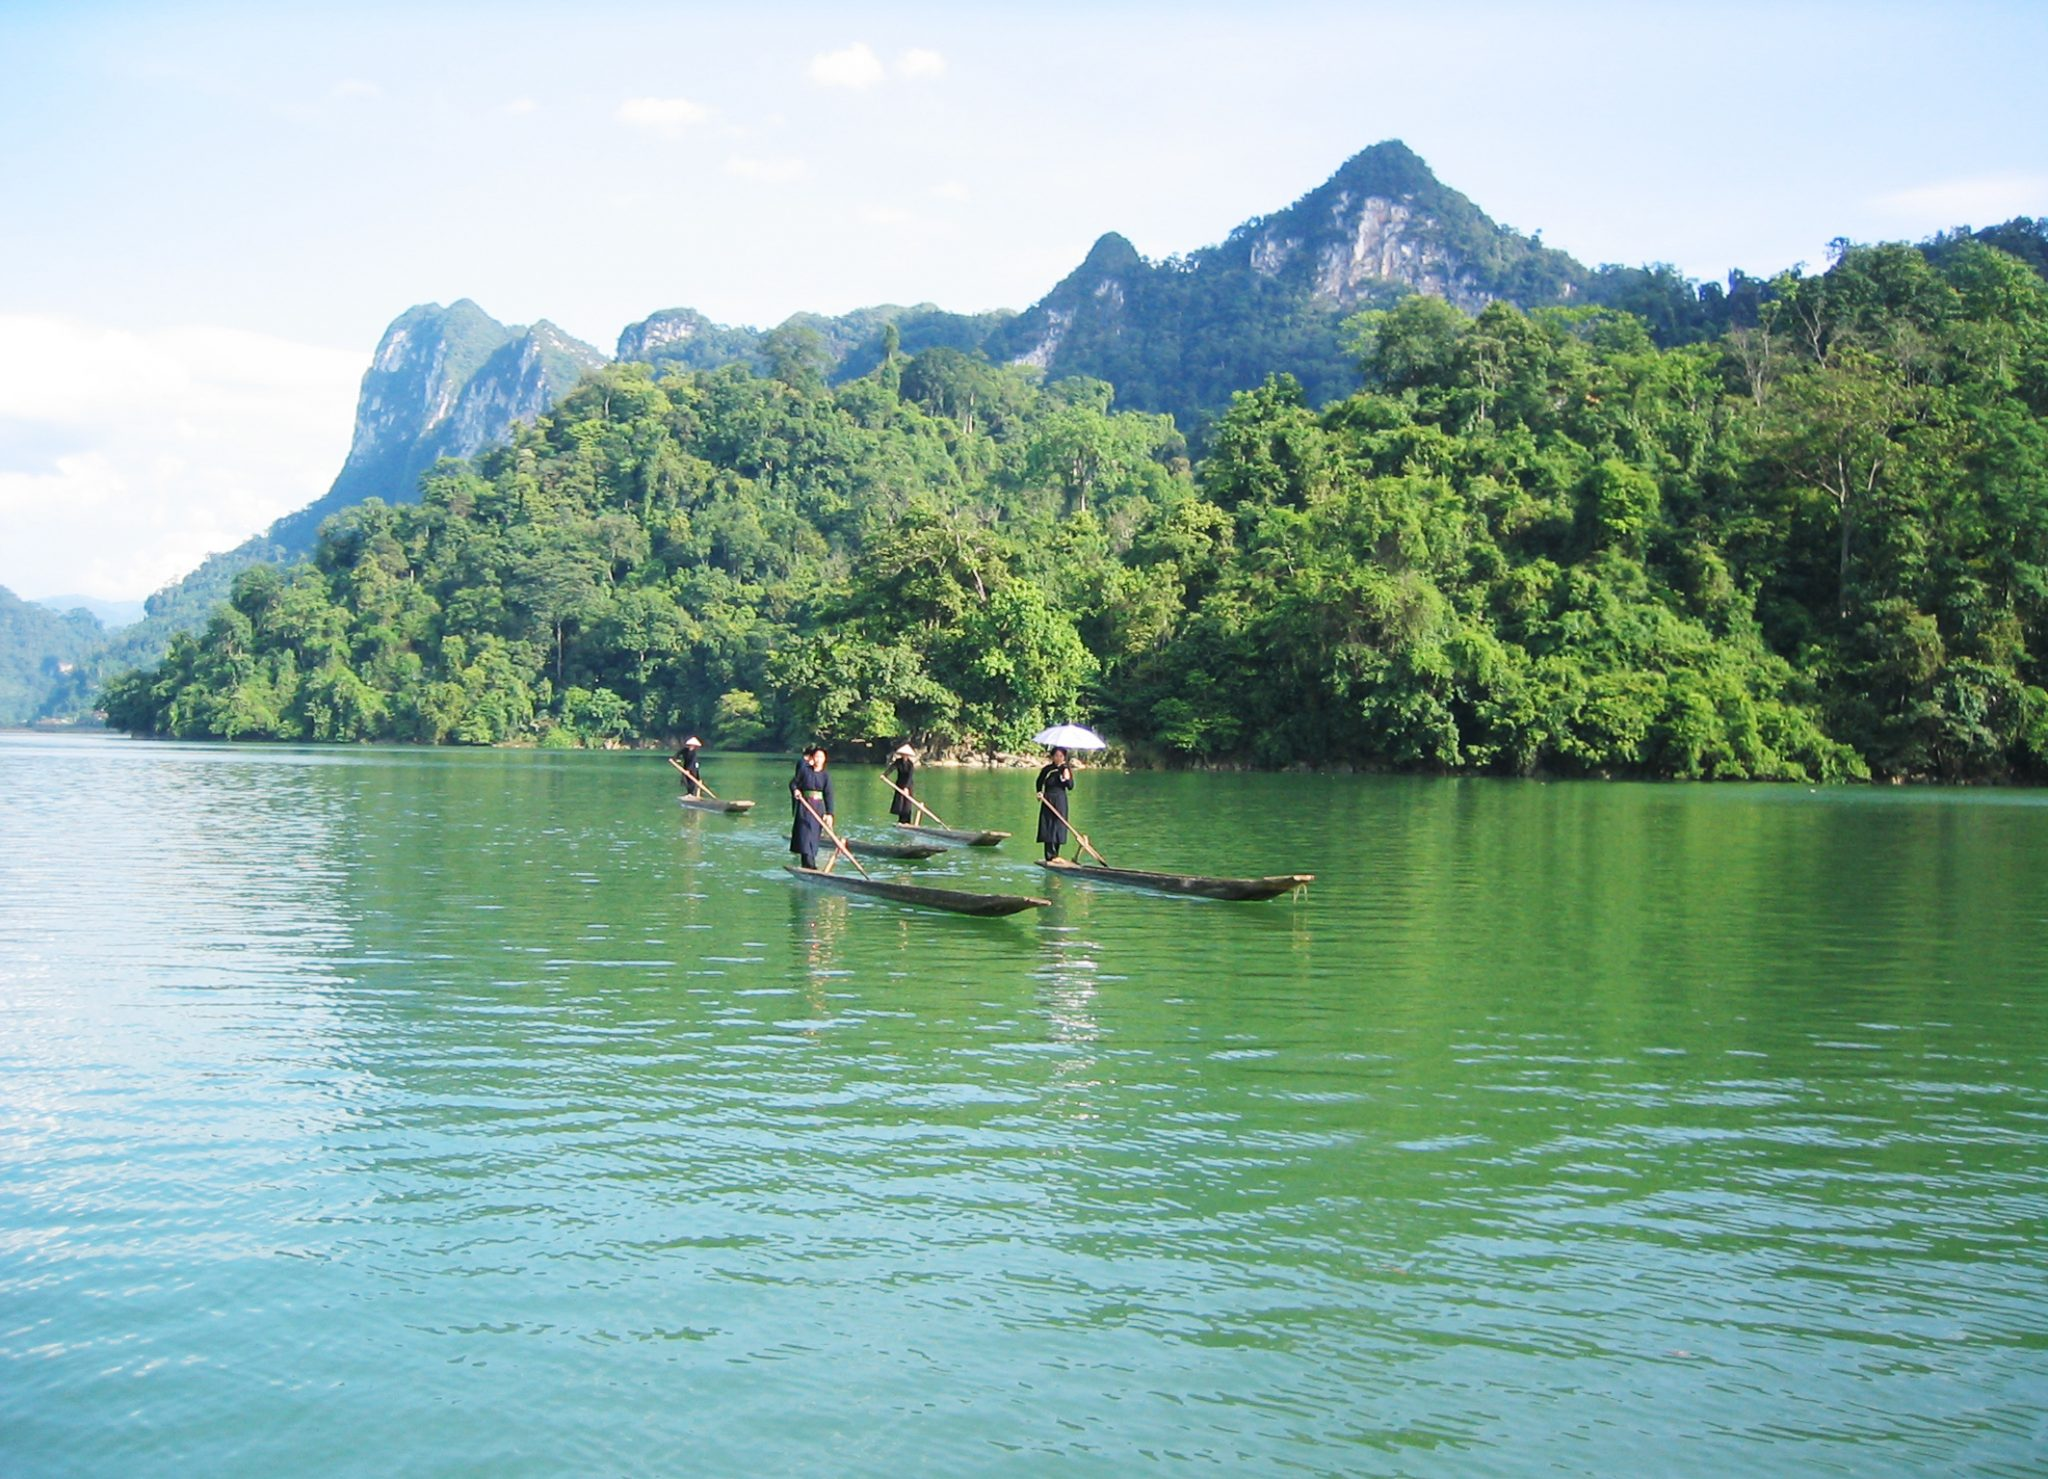 the largest lake in Vietnam